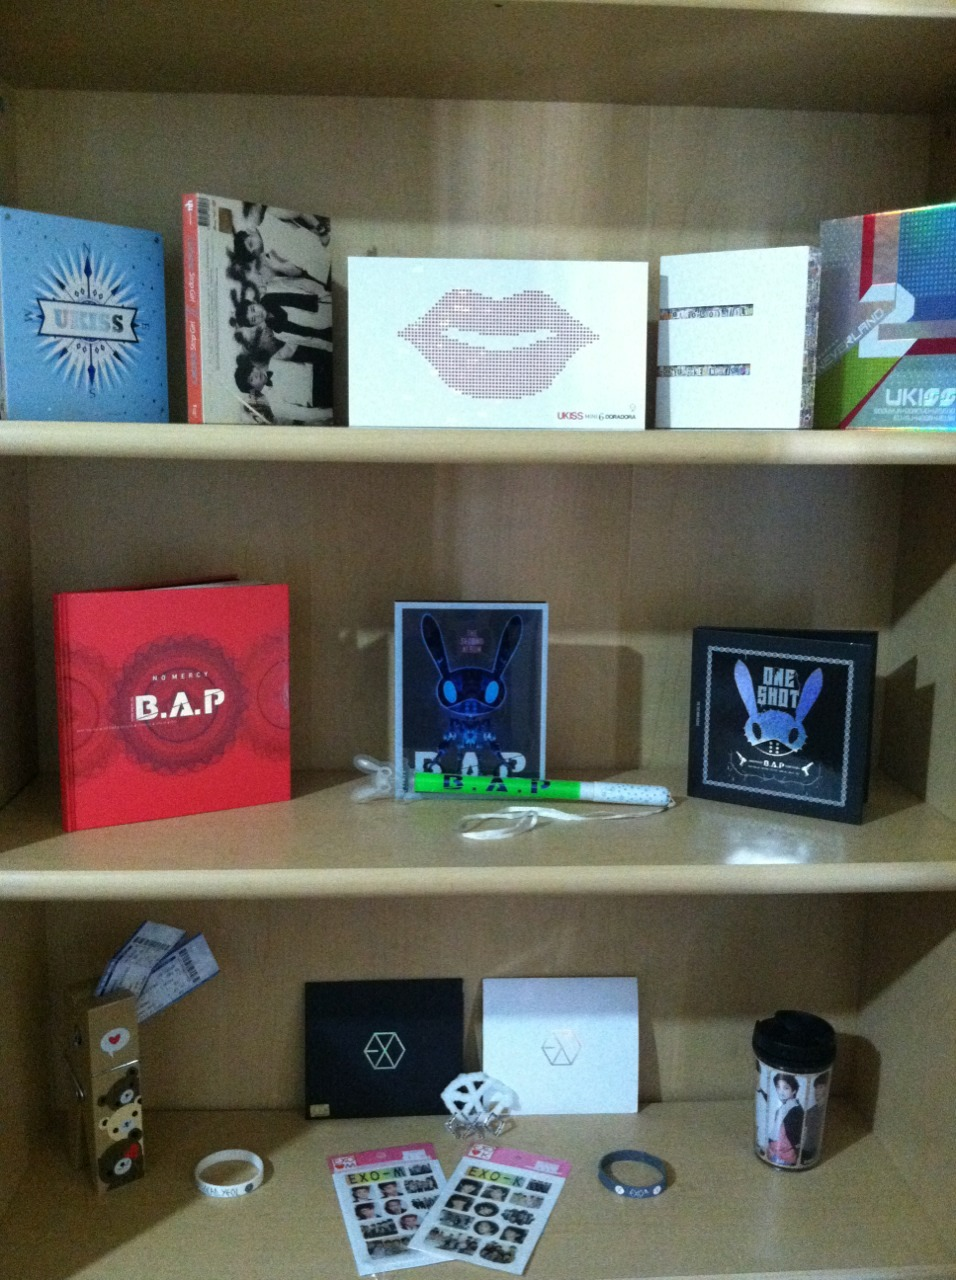 chanki-winki:  kpoppingguhl:  chanki-winki:  My bookshelf of truth  That is amazing.   Thank you ^^